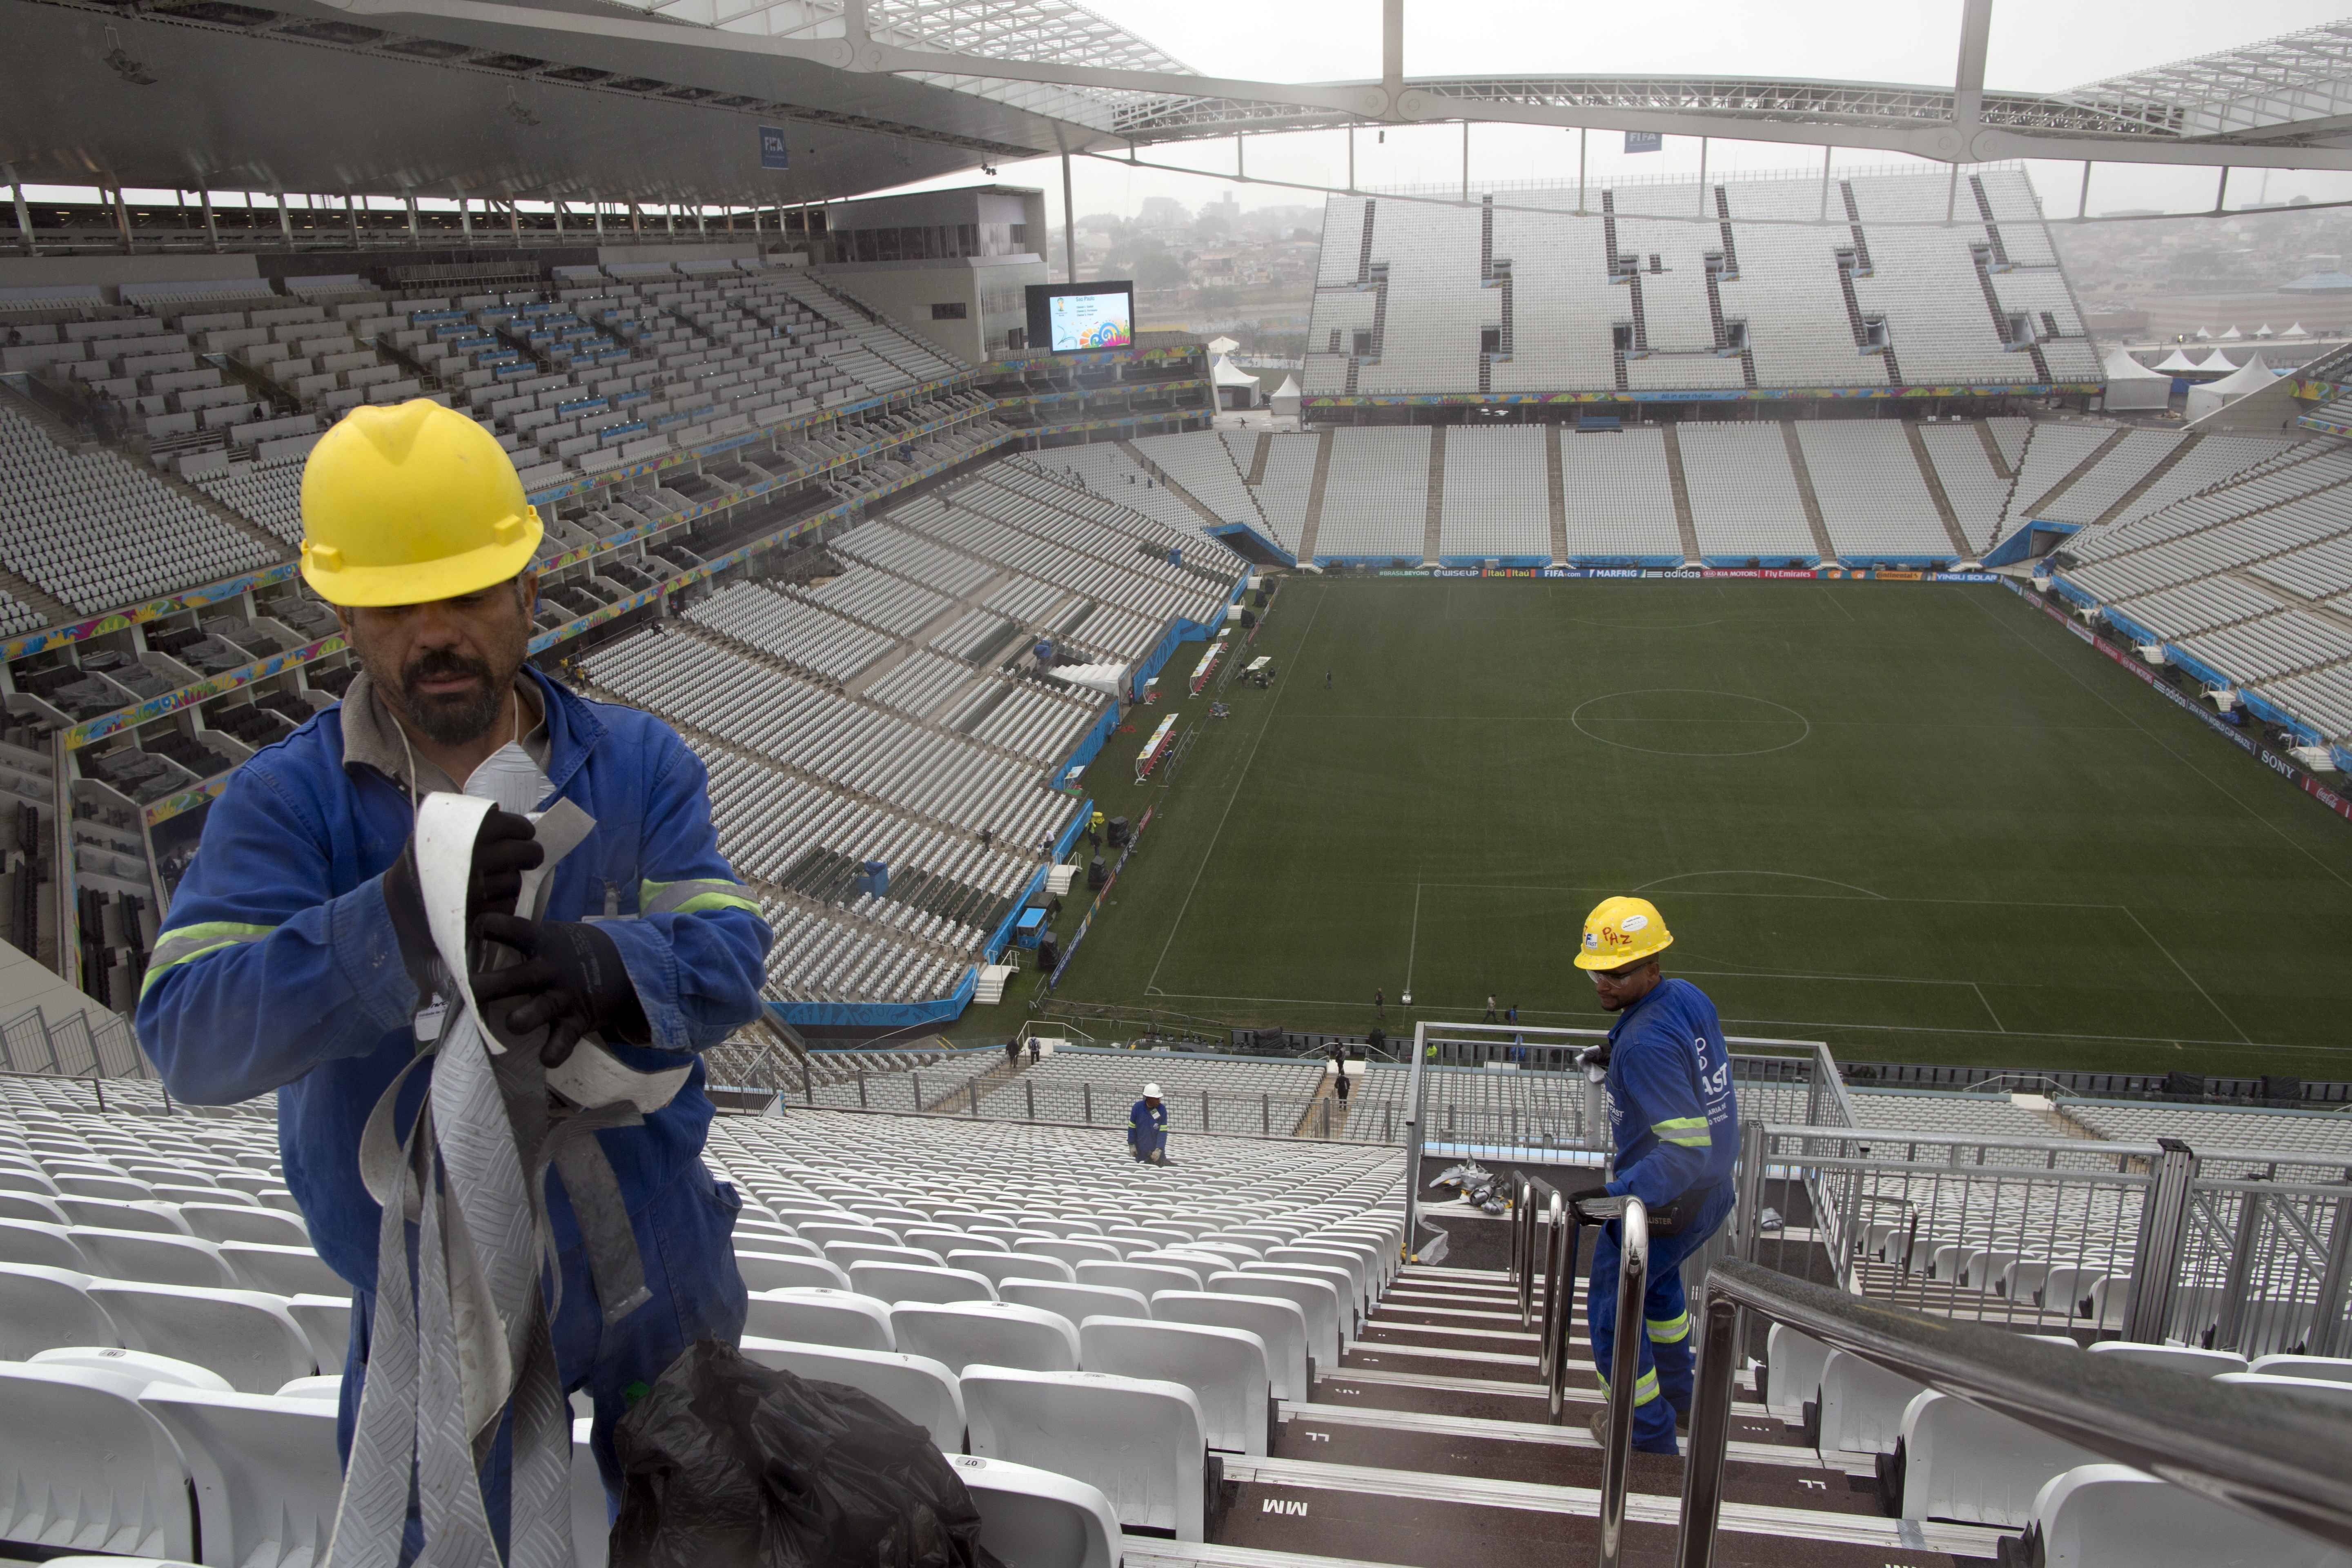 Workers clean the stairs at Arena Corinthians stadium in Sao Paulo, Brazil, Wednesday, June 11, 2014. The World Cup soccer tournament starts Thursday.